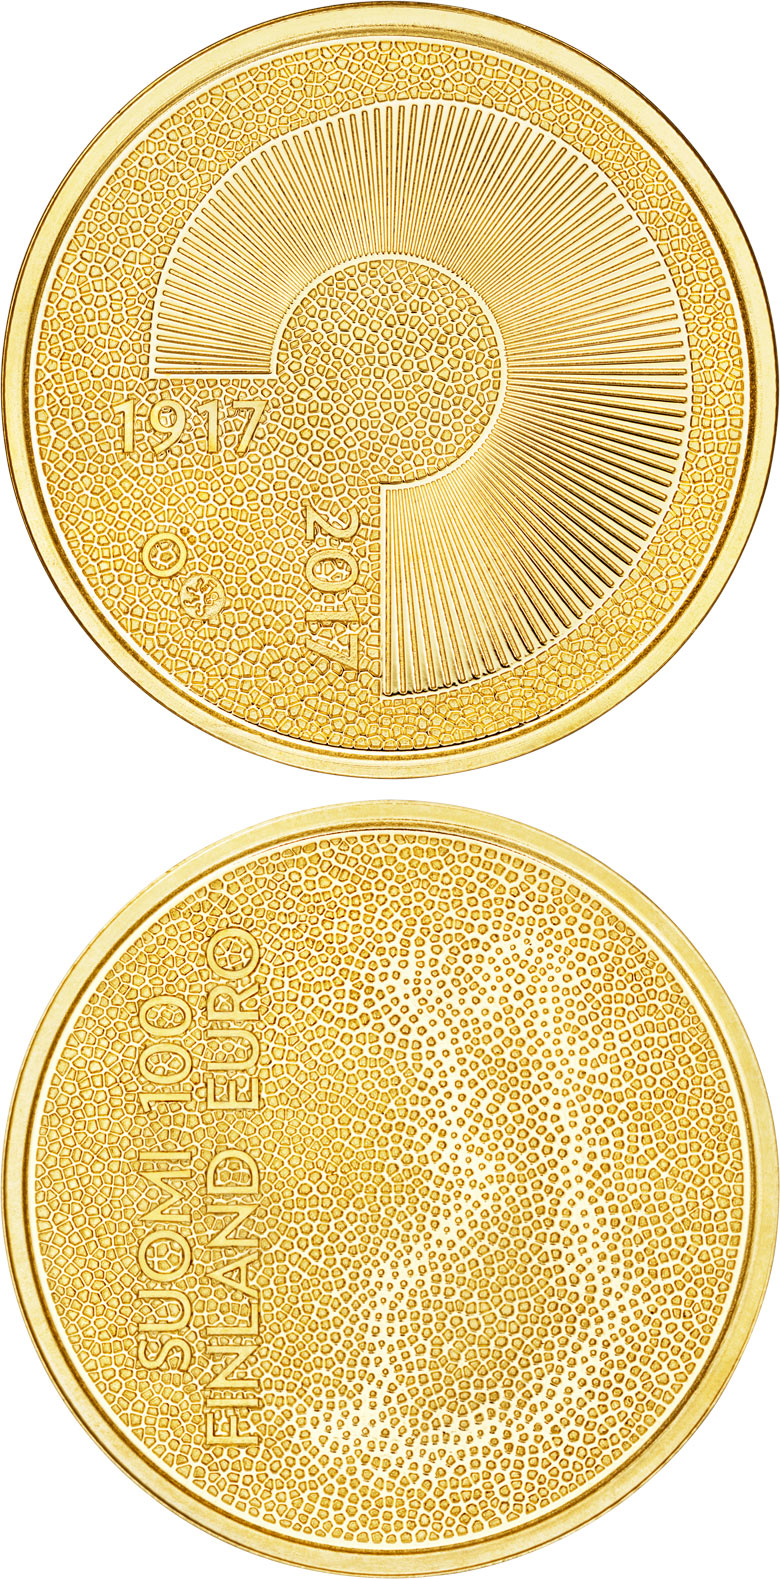 Image of a coin 100 euro | Finland | Independent Finland 100 Years | 2017